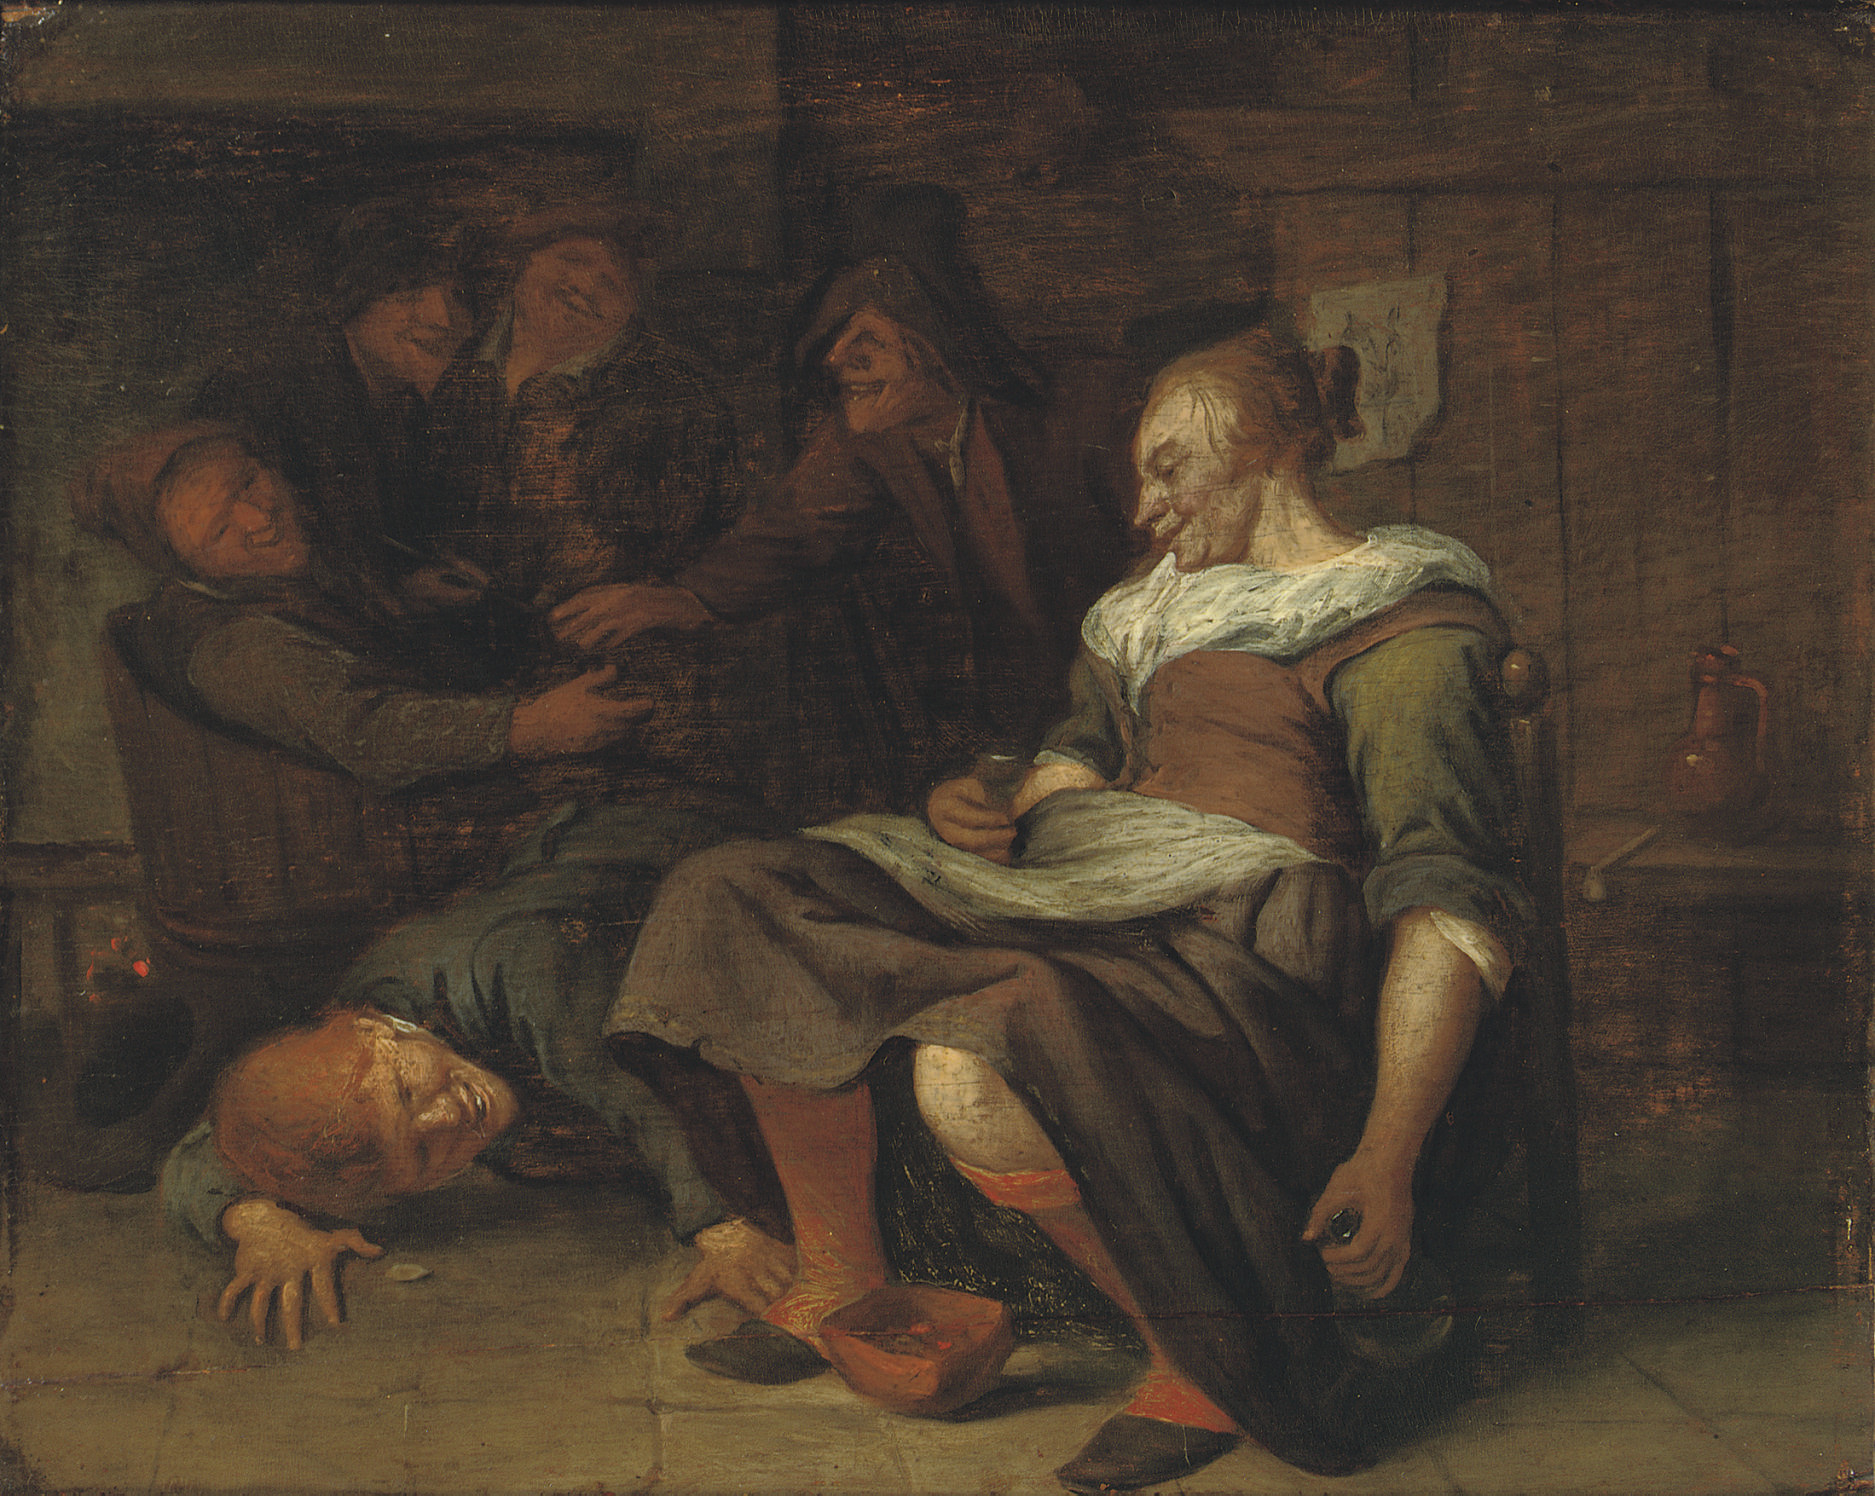 A peasant woman with a boy trying to look under her skirt